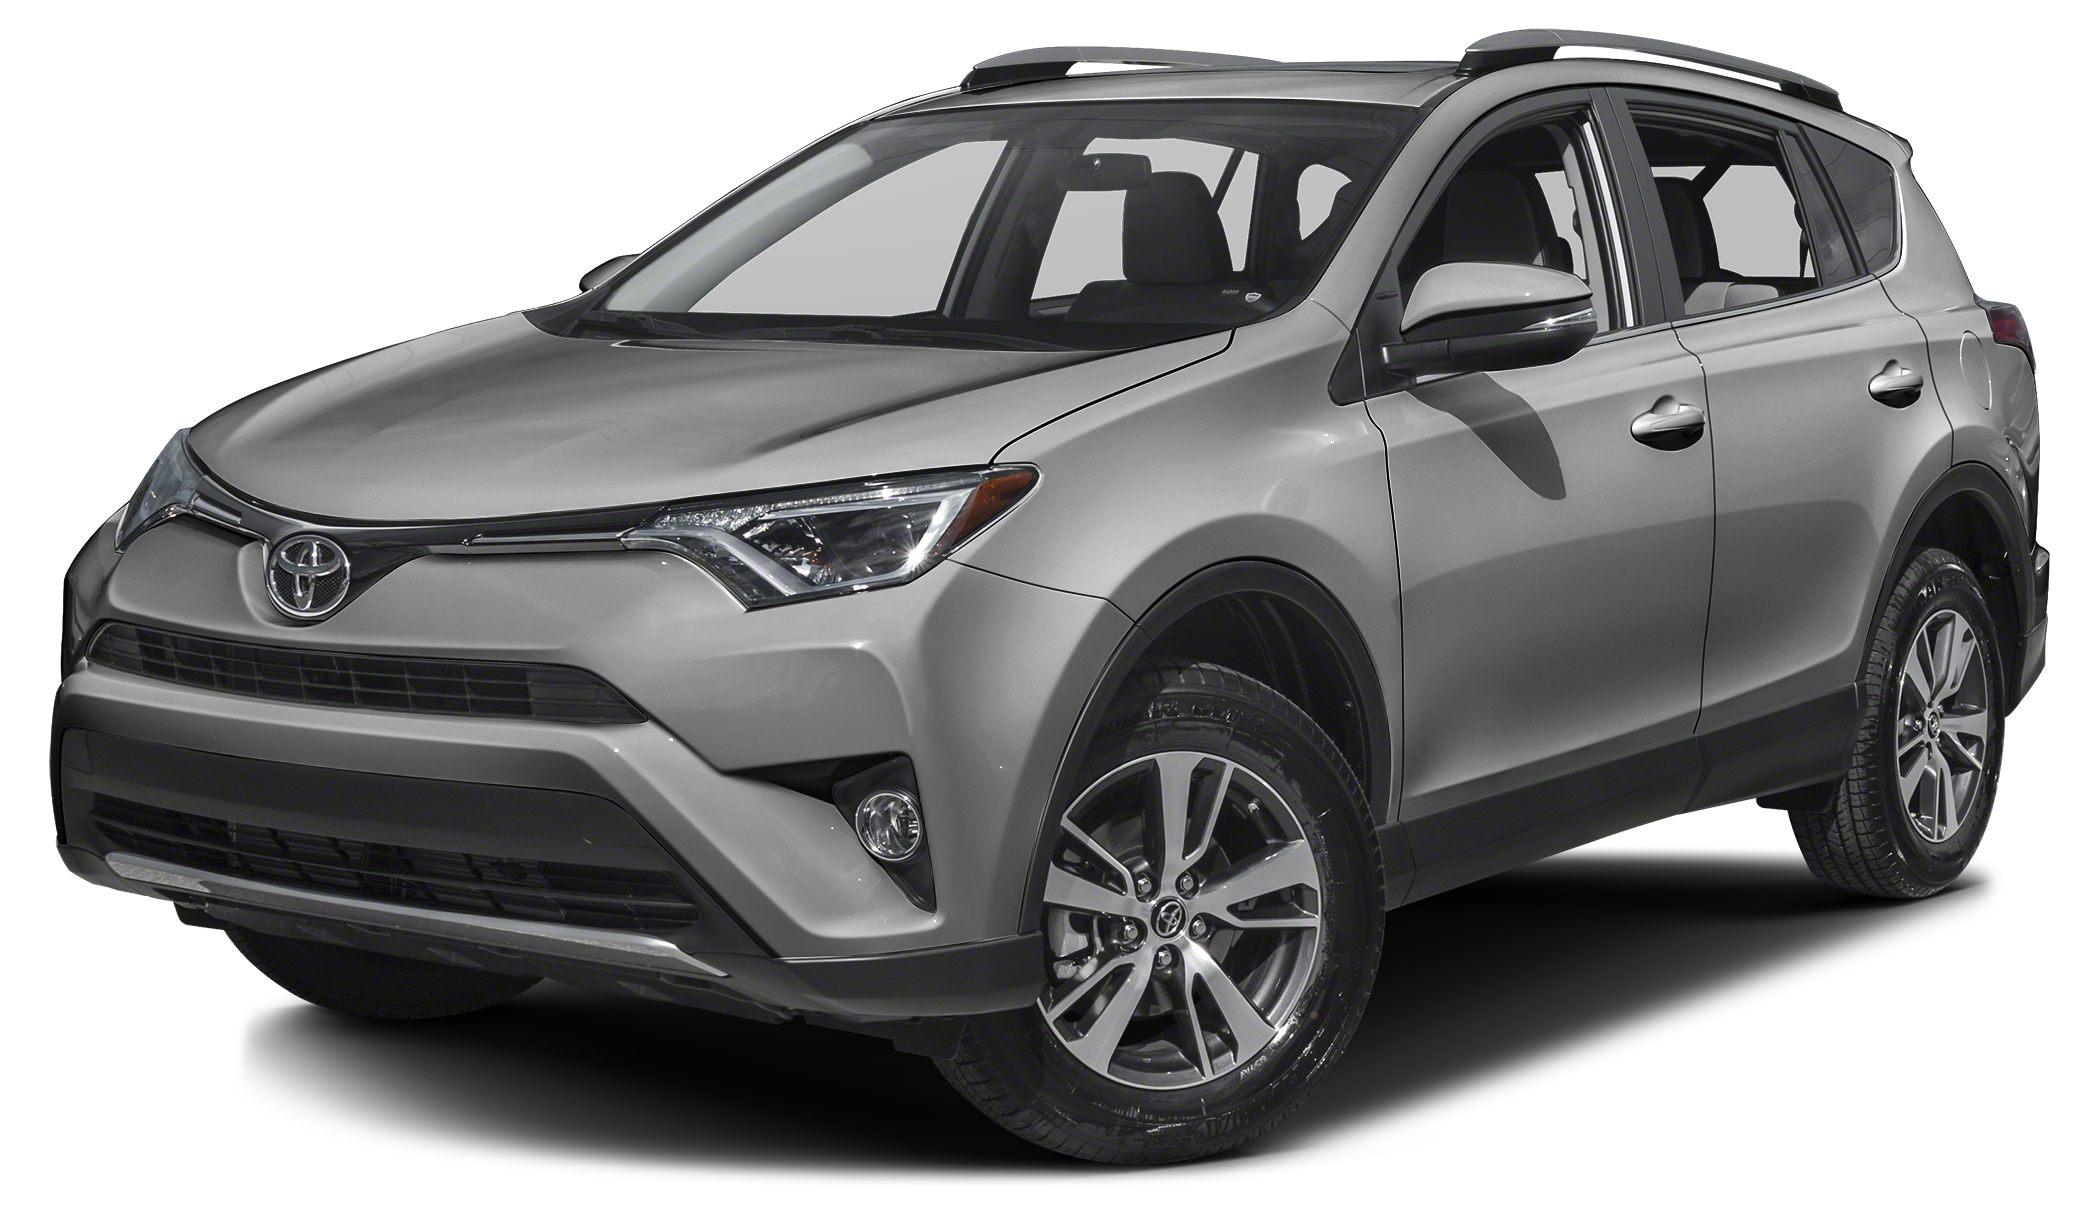 2016 Toyota RAV4 XLE XLE trim CARFAX 1-Owner FUEL EFFICIENT 29 MPG Hwy22 MPG City Navigation